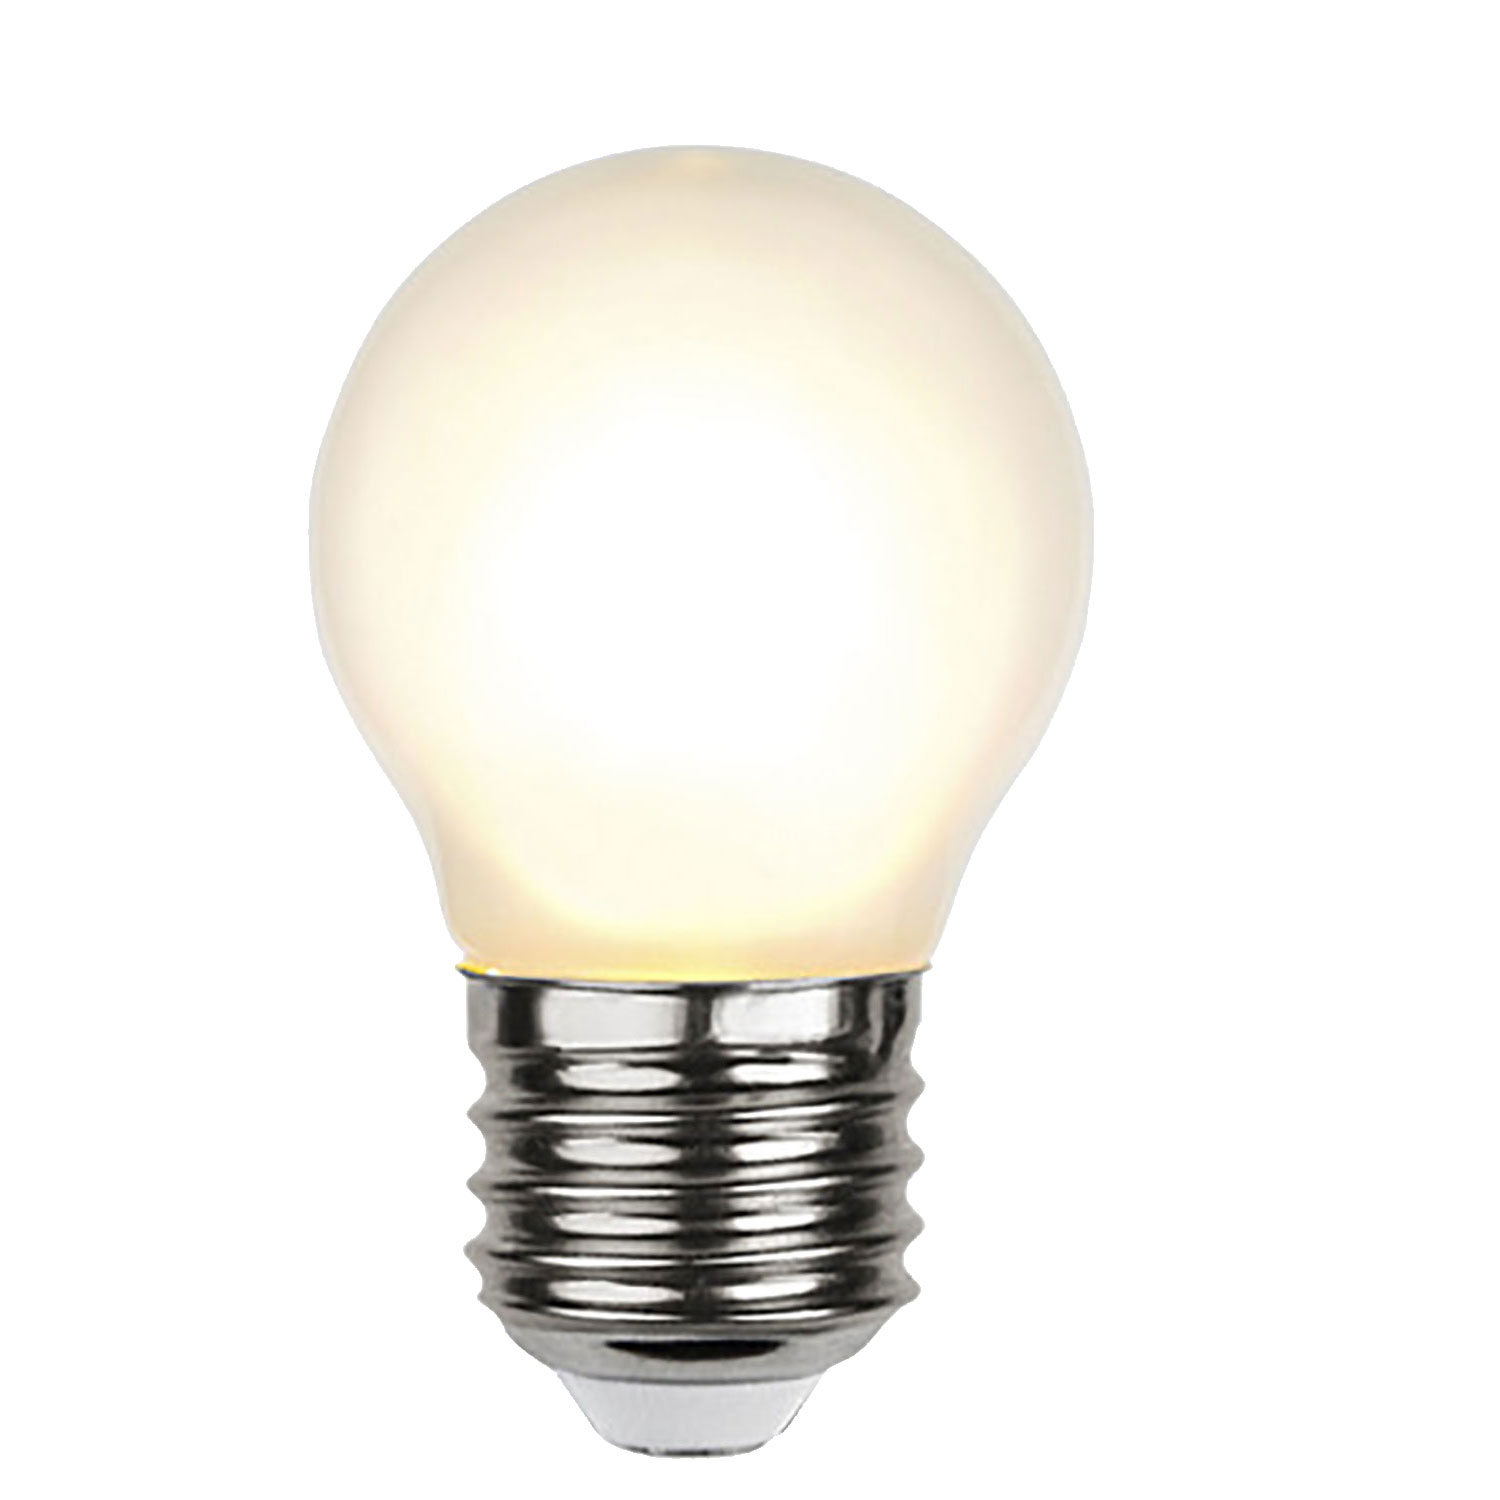 LED-lampa E27 G45 frosted filament